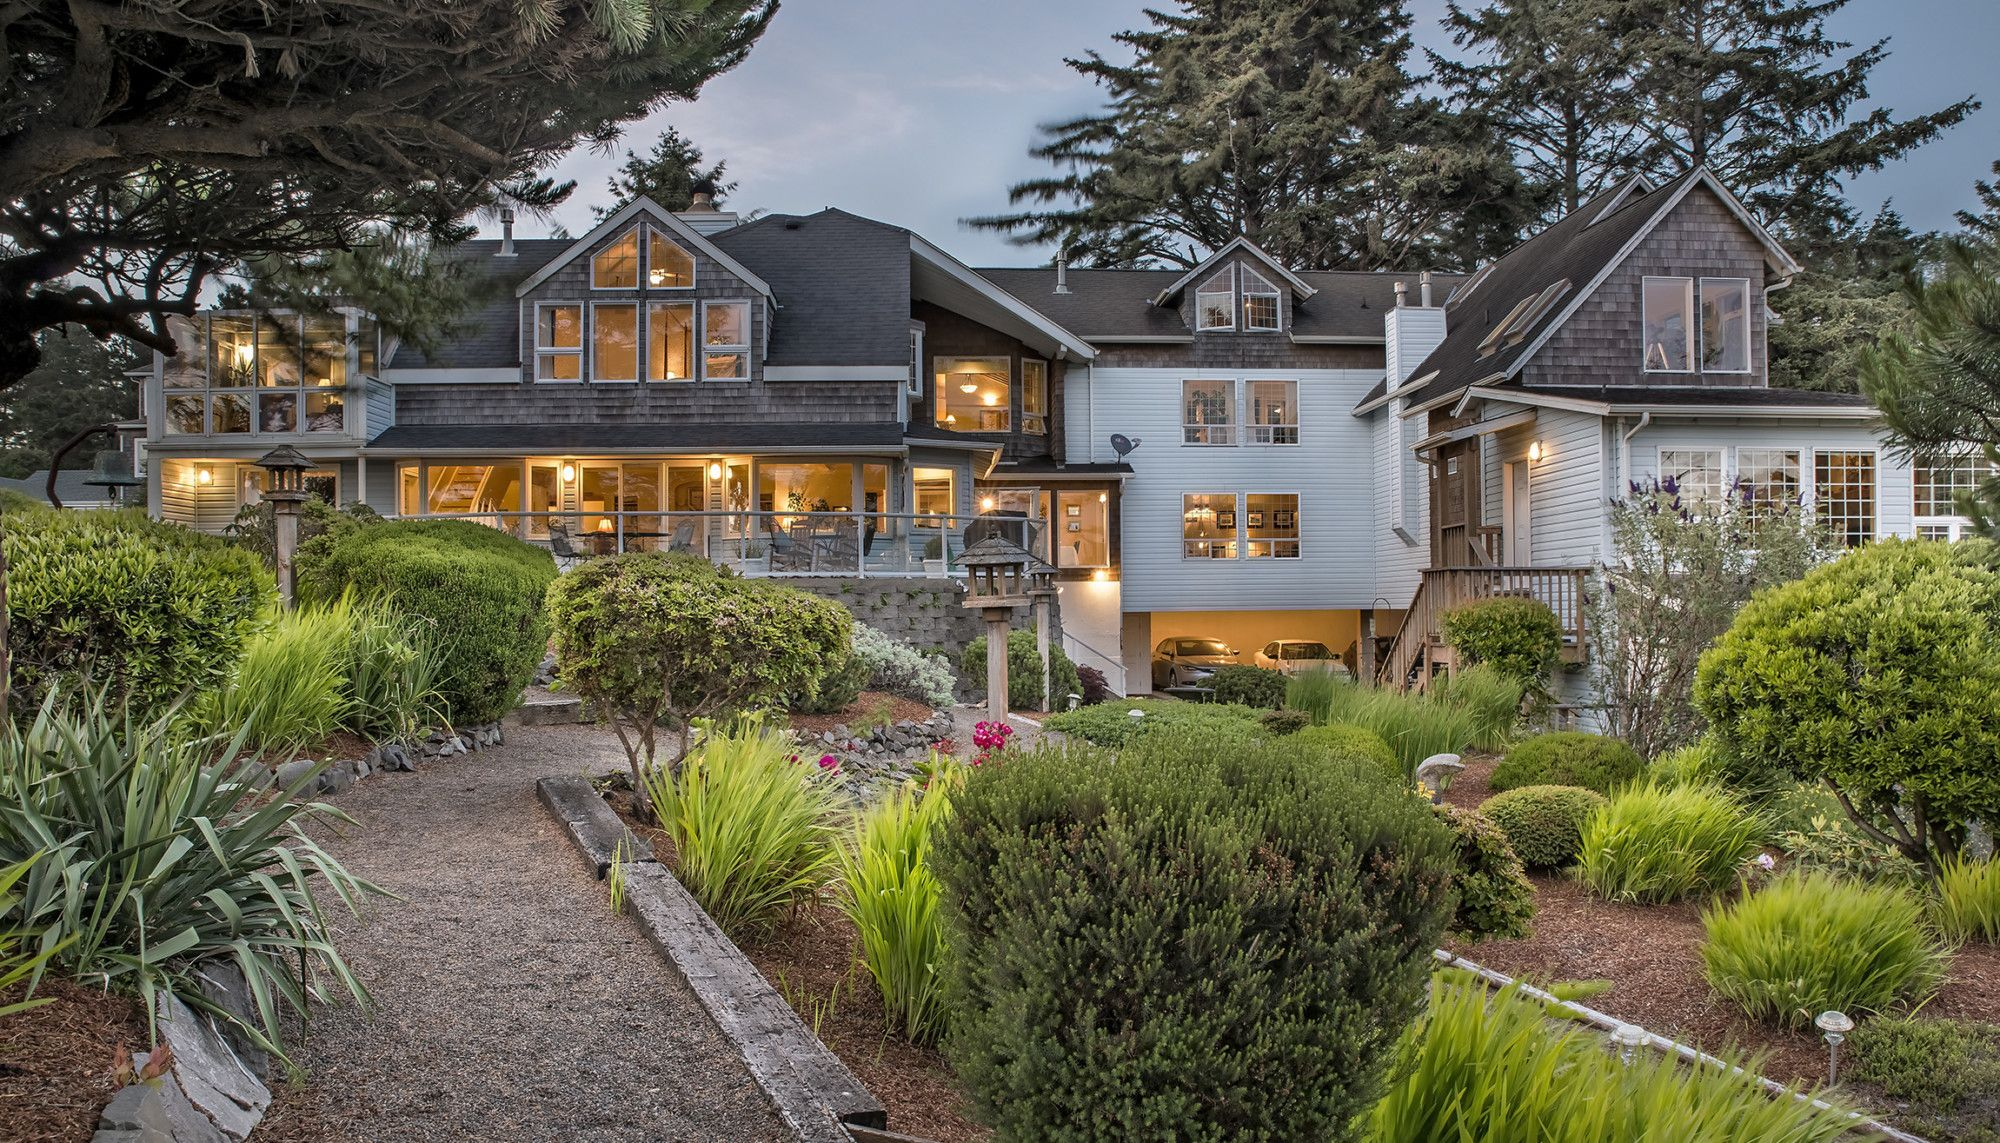 1,750,000. Oregon Oceanfront B&B for sale Ocean house